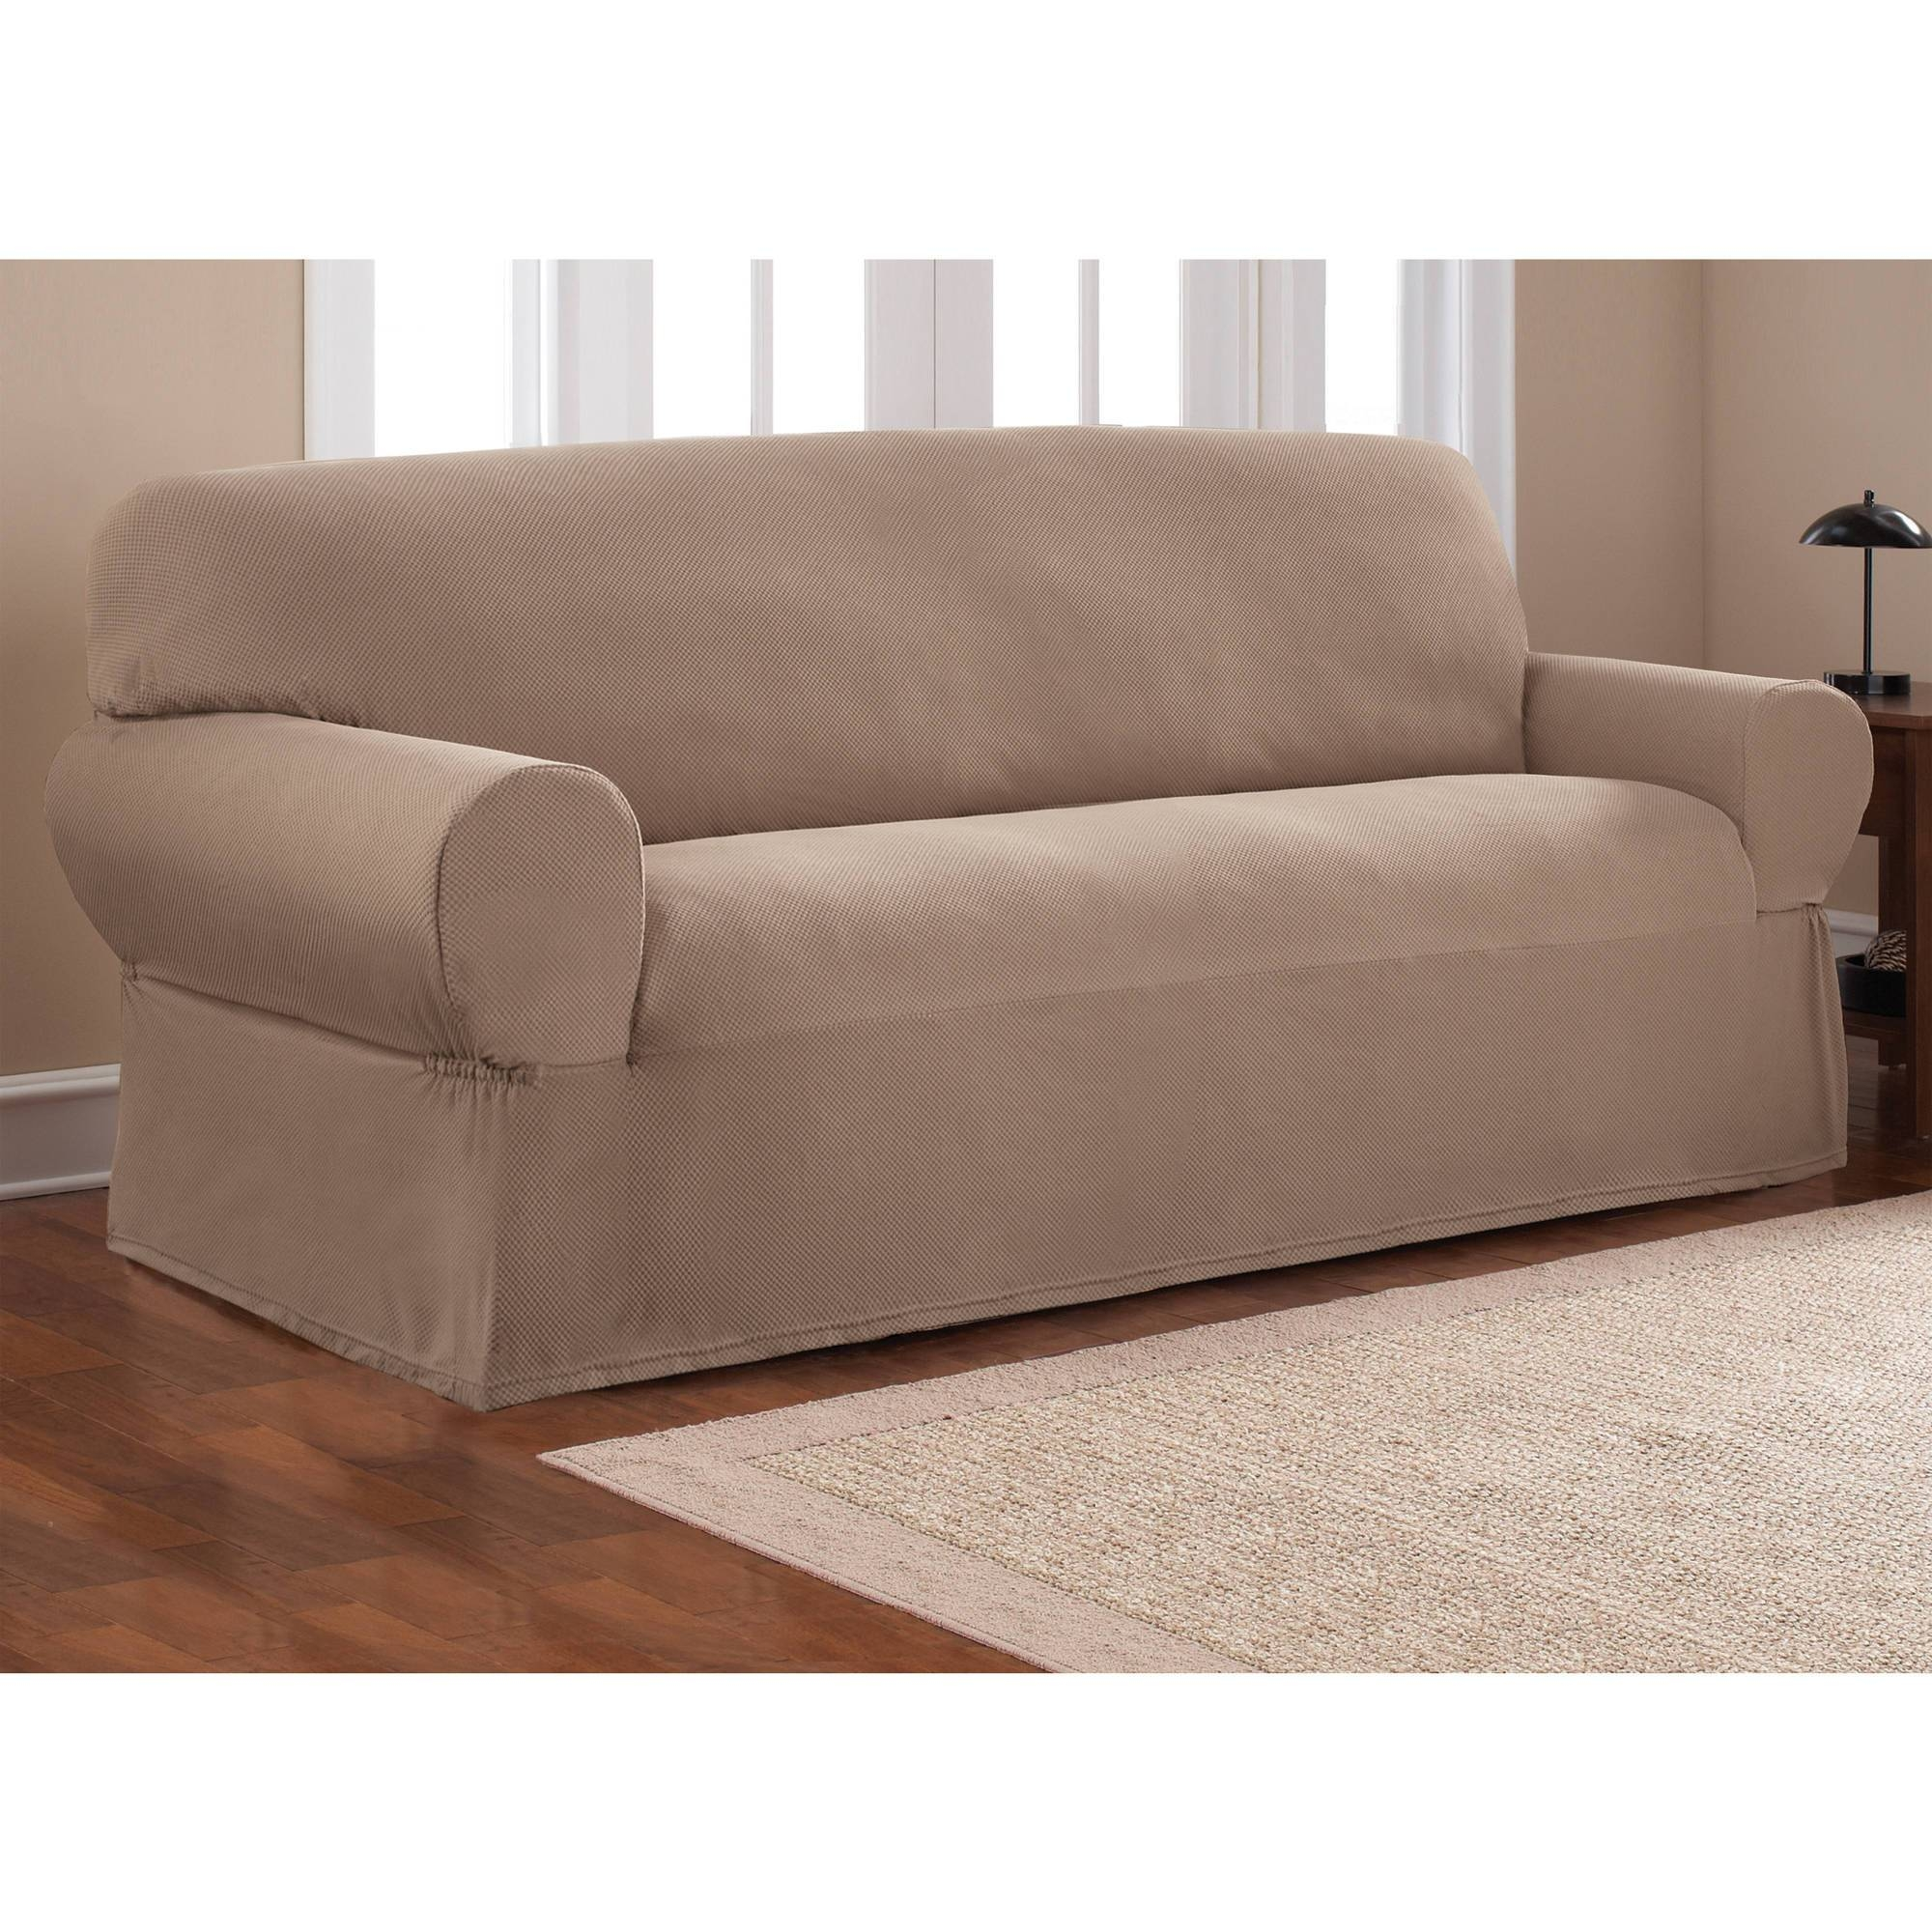 Mainstays 1-Piece Stretch Fabric Sofa Slipcover - Walmart intended for Clearance Sofa Covers (Image 9 of 30)